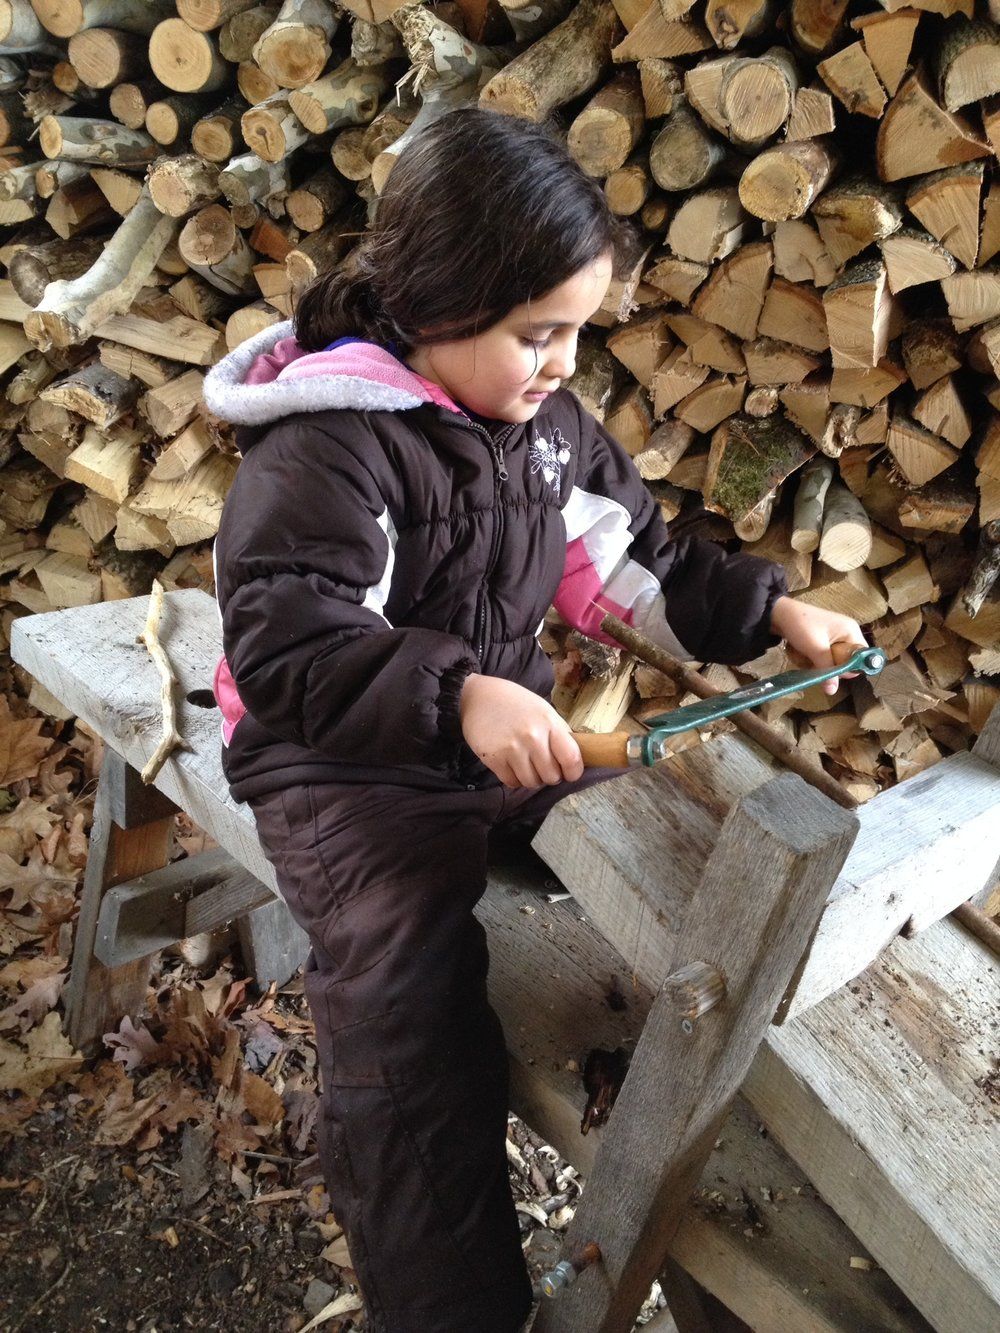 Wood Carving, Maple Sugar Family Weekend